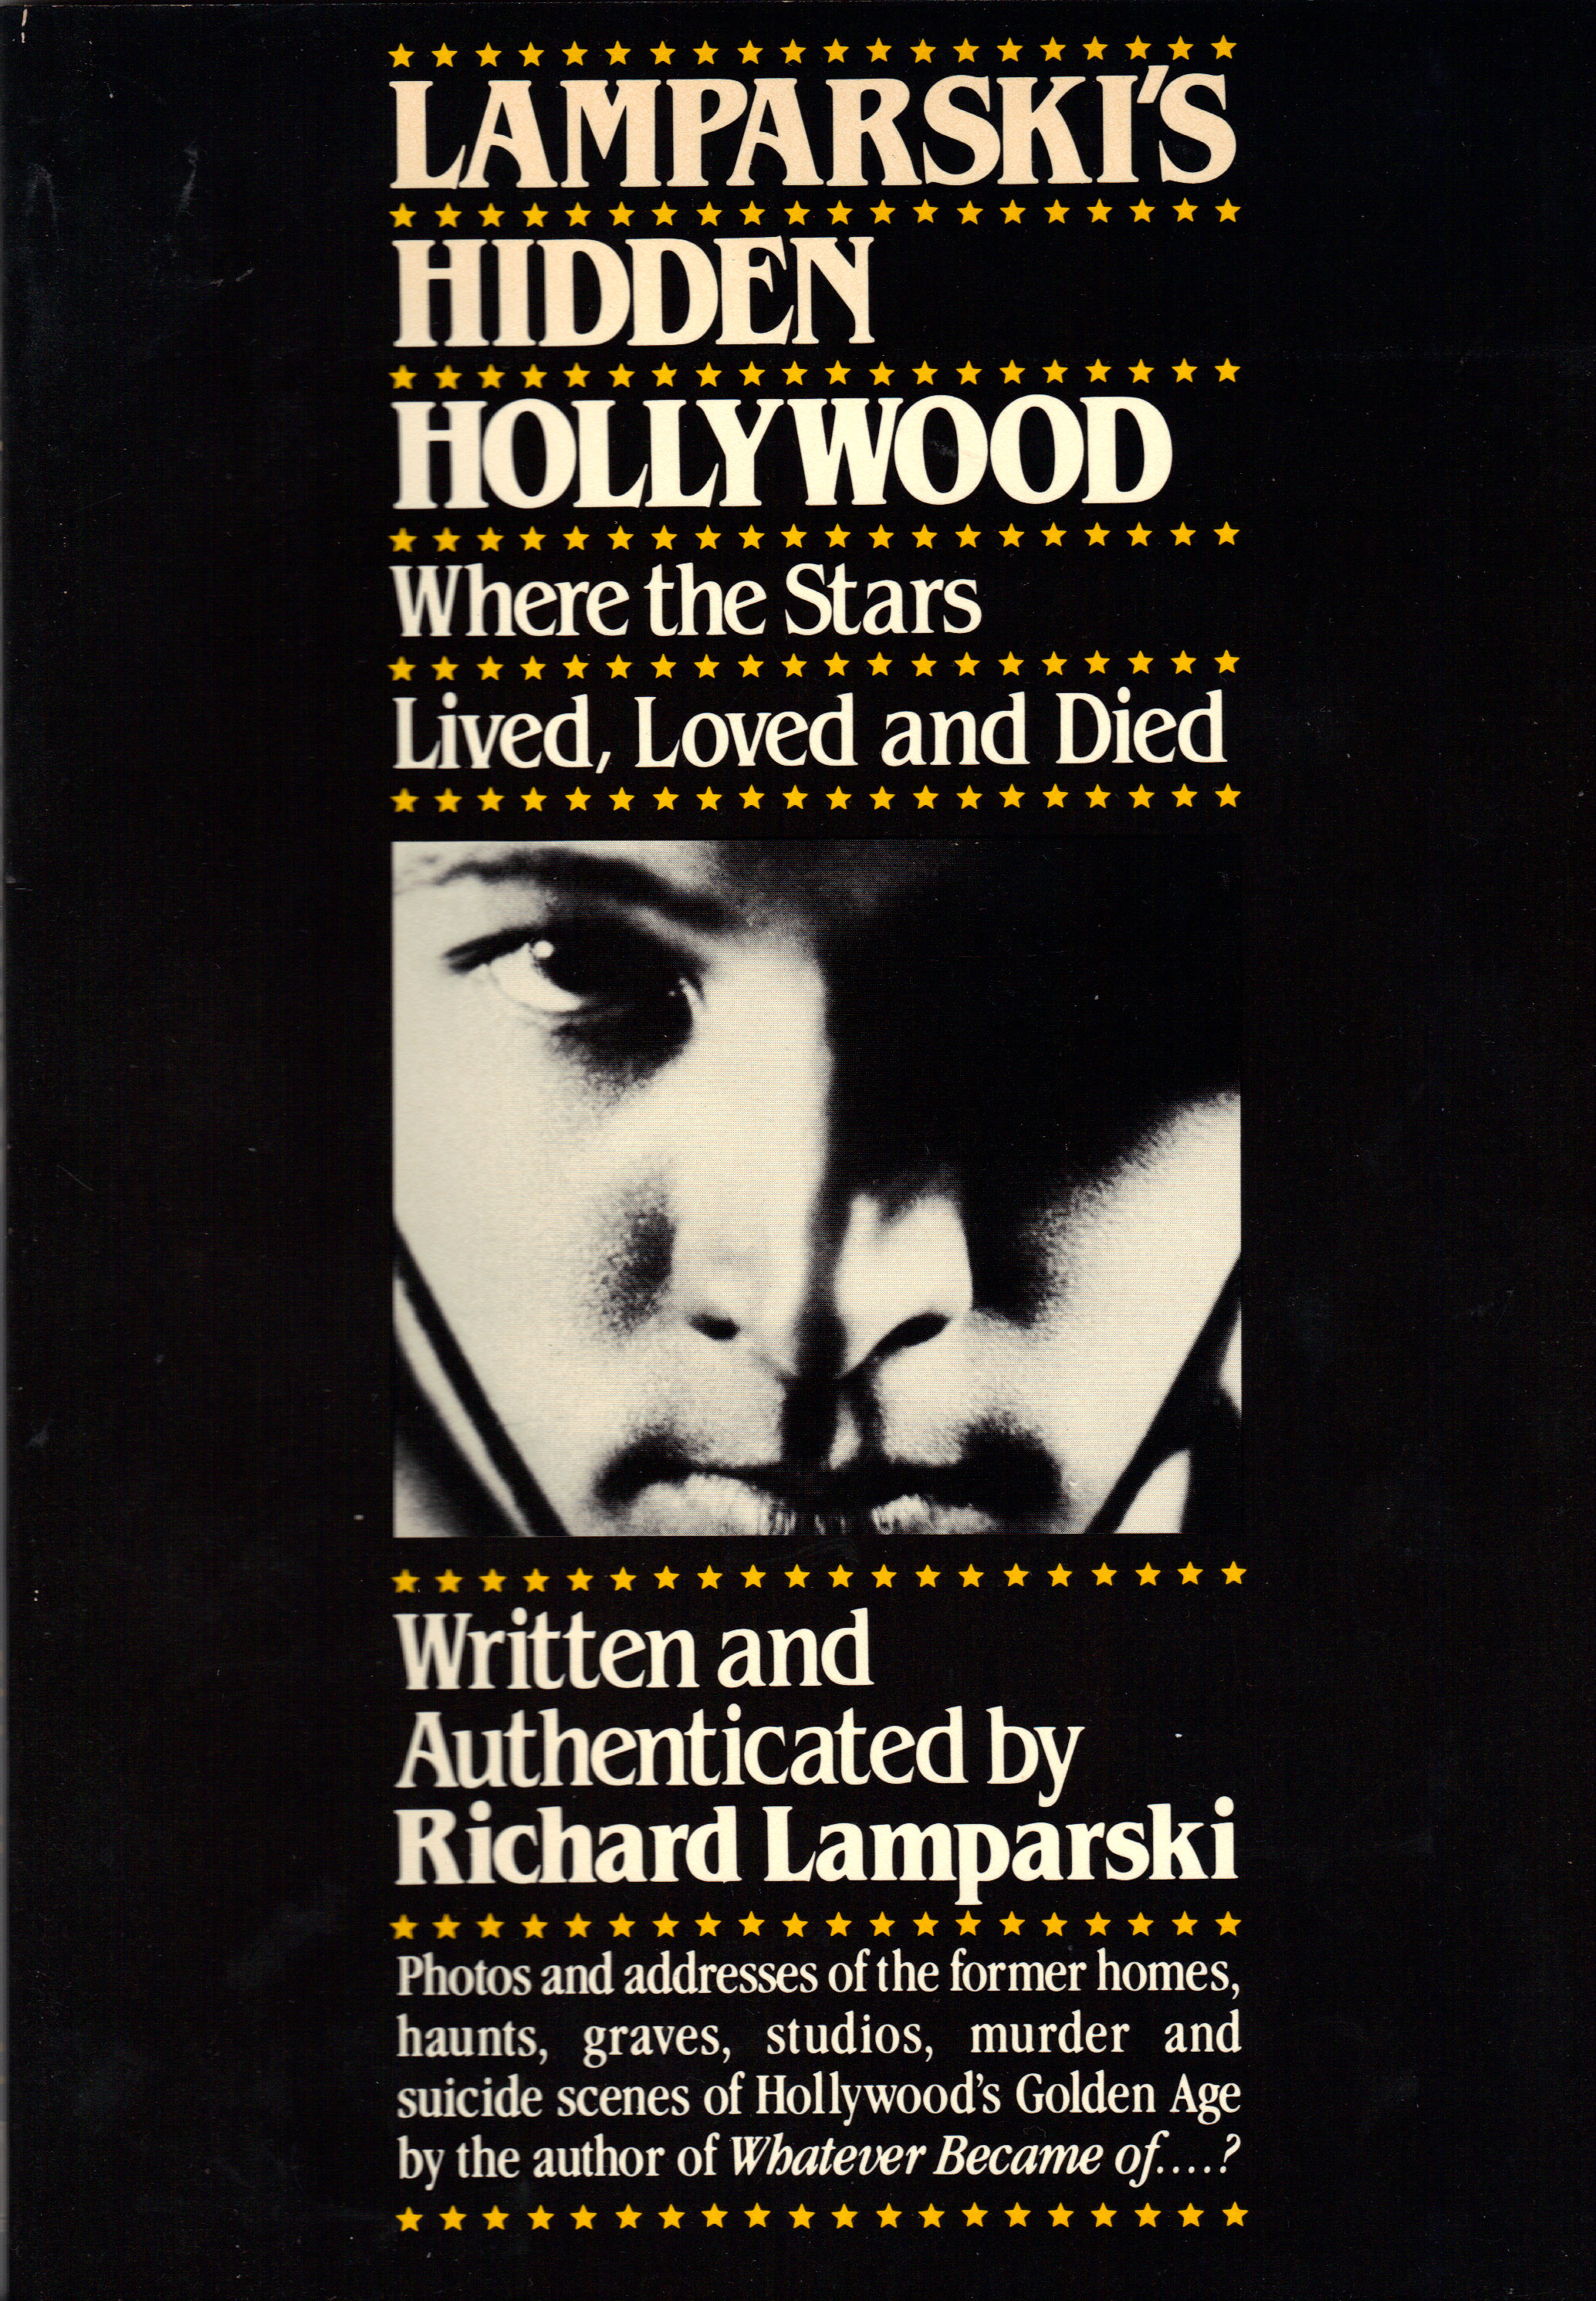 Image for LAMPARSKI'S HIDDEN HOLLYWOOD ~ Where the Stars Lived, Loved and Died